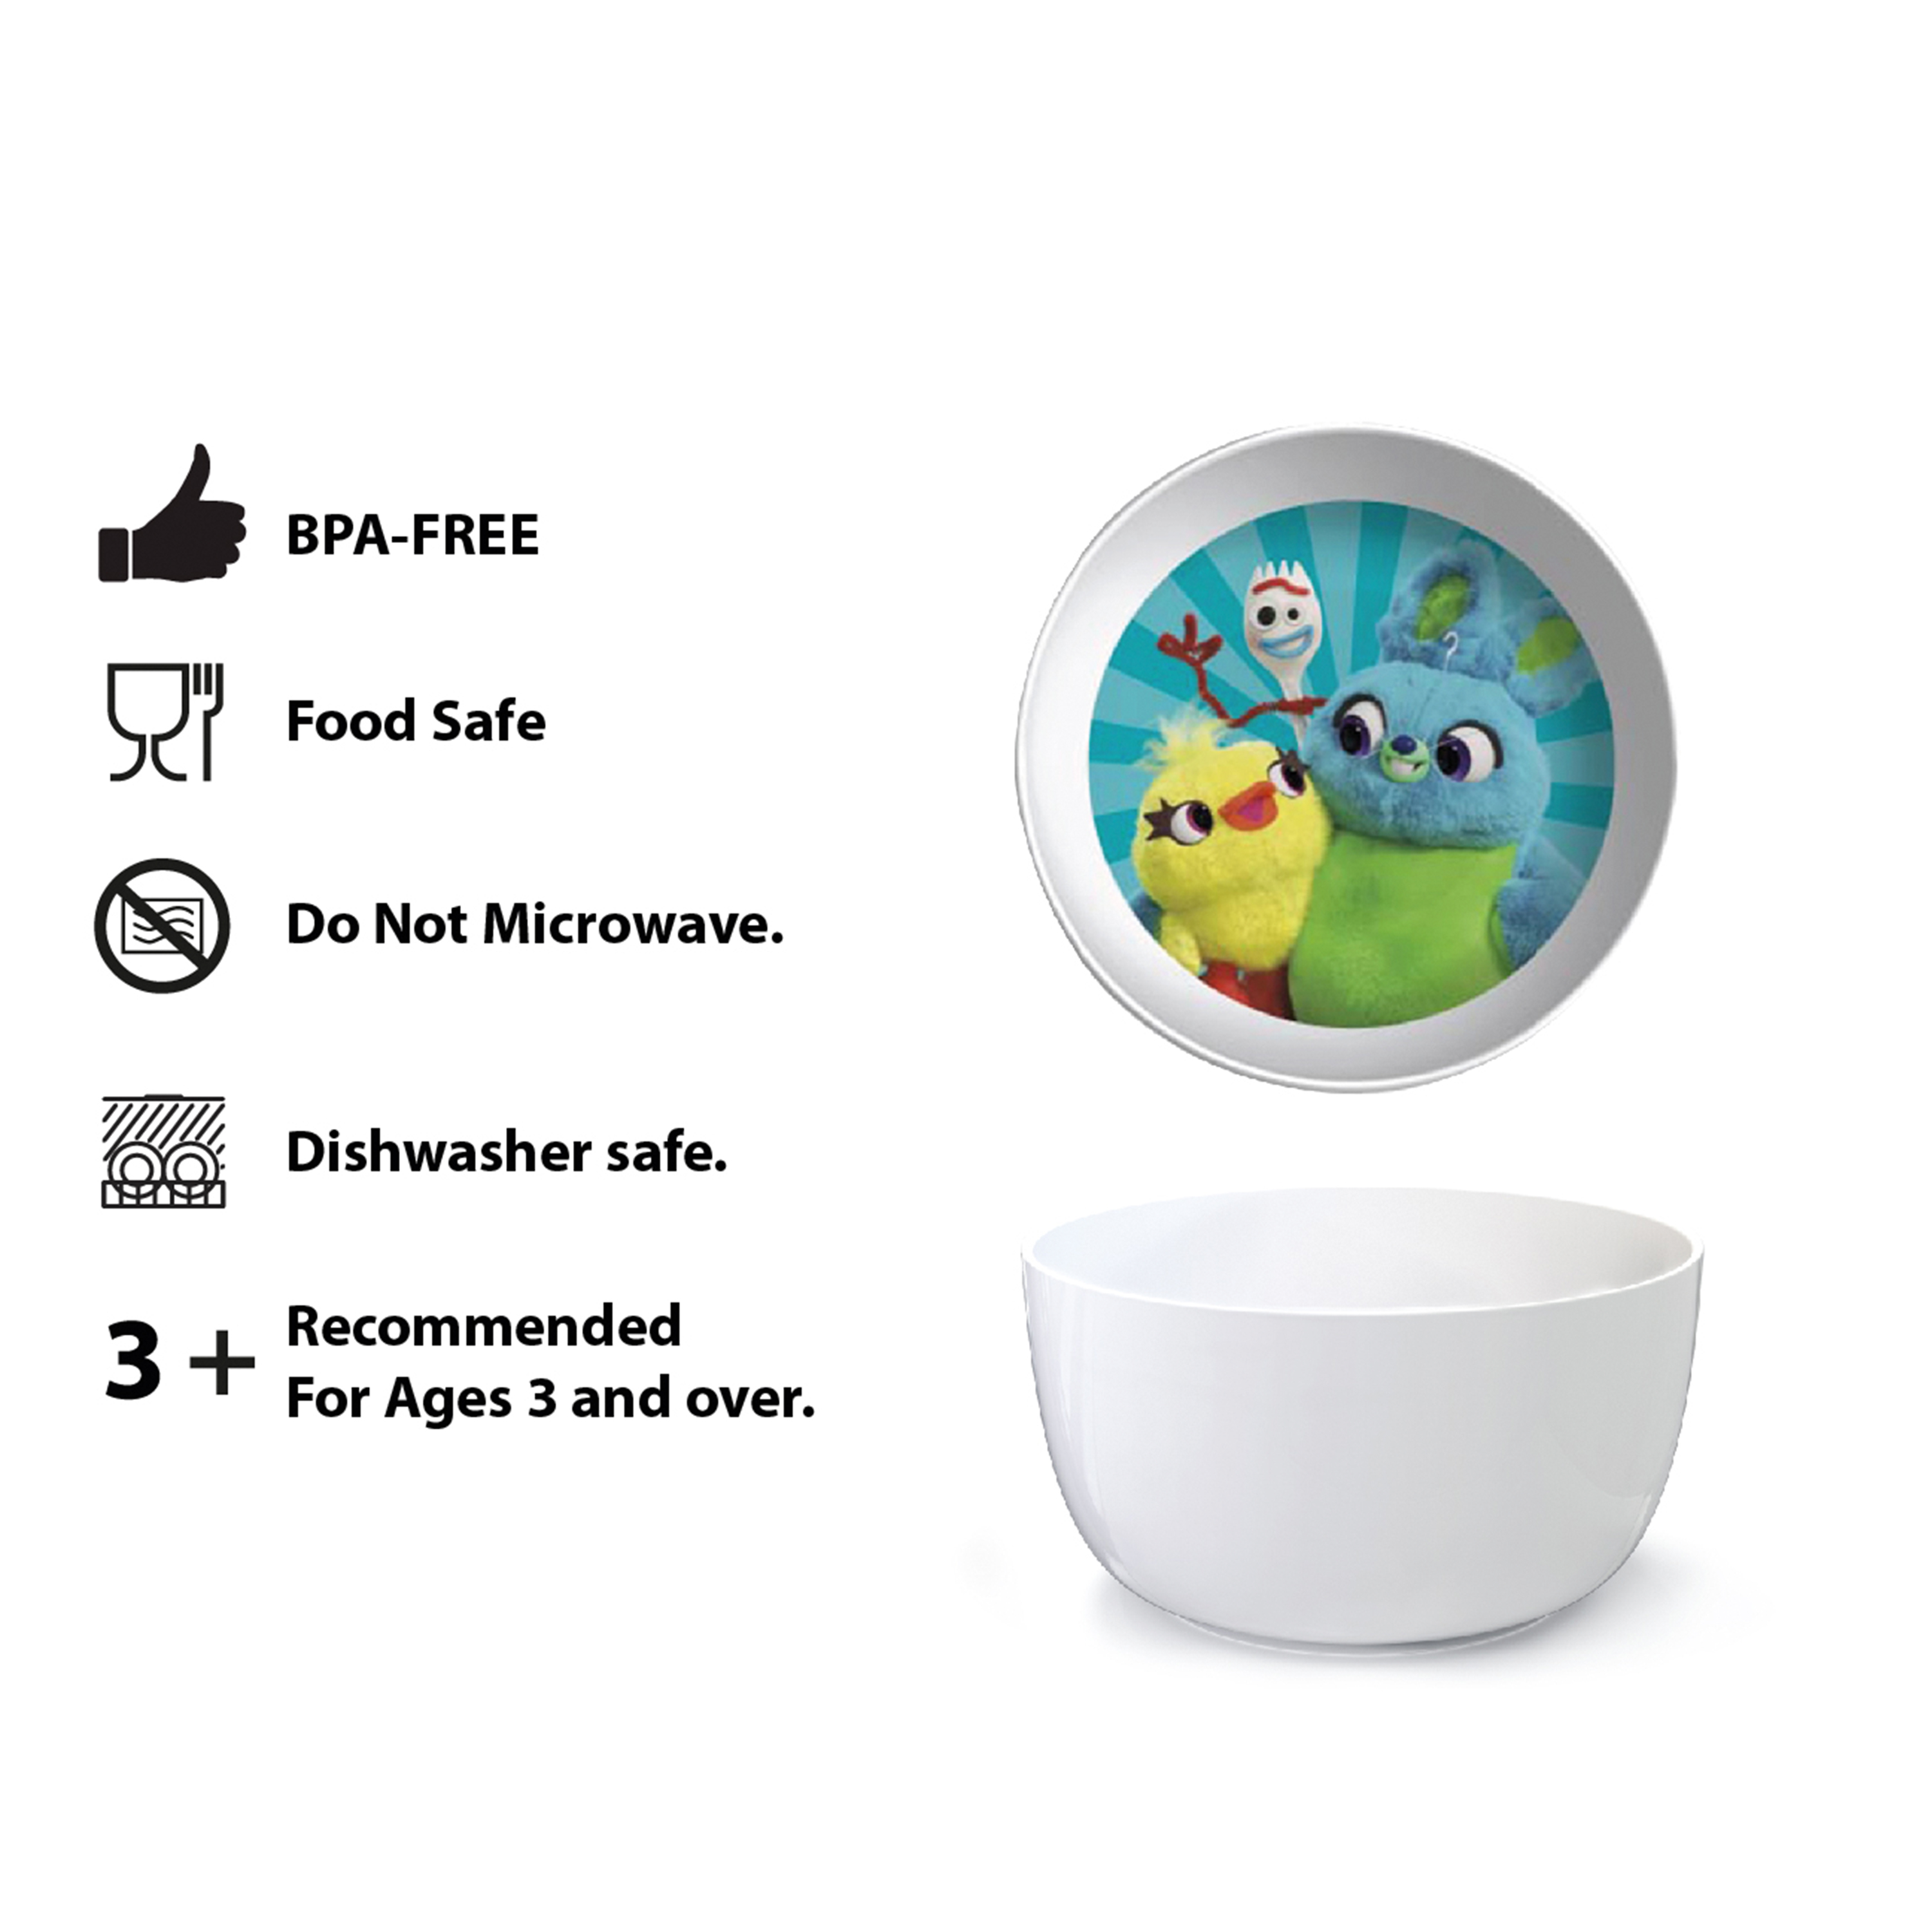 Disney Pixar Dinnerware Set, Woody, Buzz and Friends, 5-piece set slideshow image 10